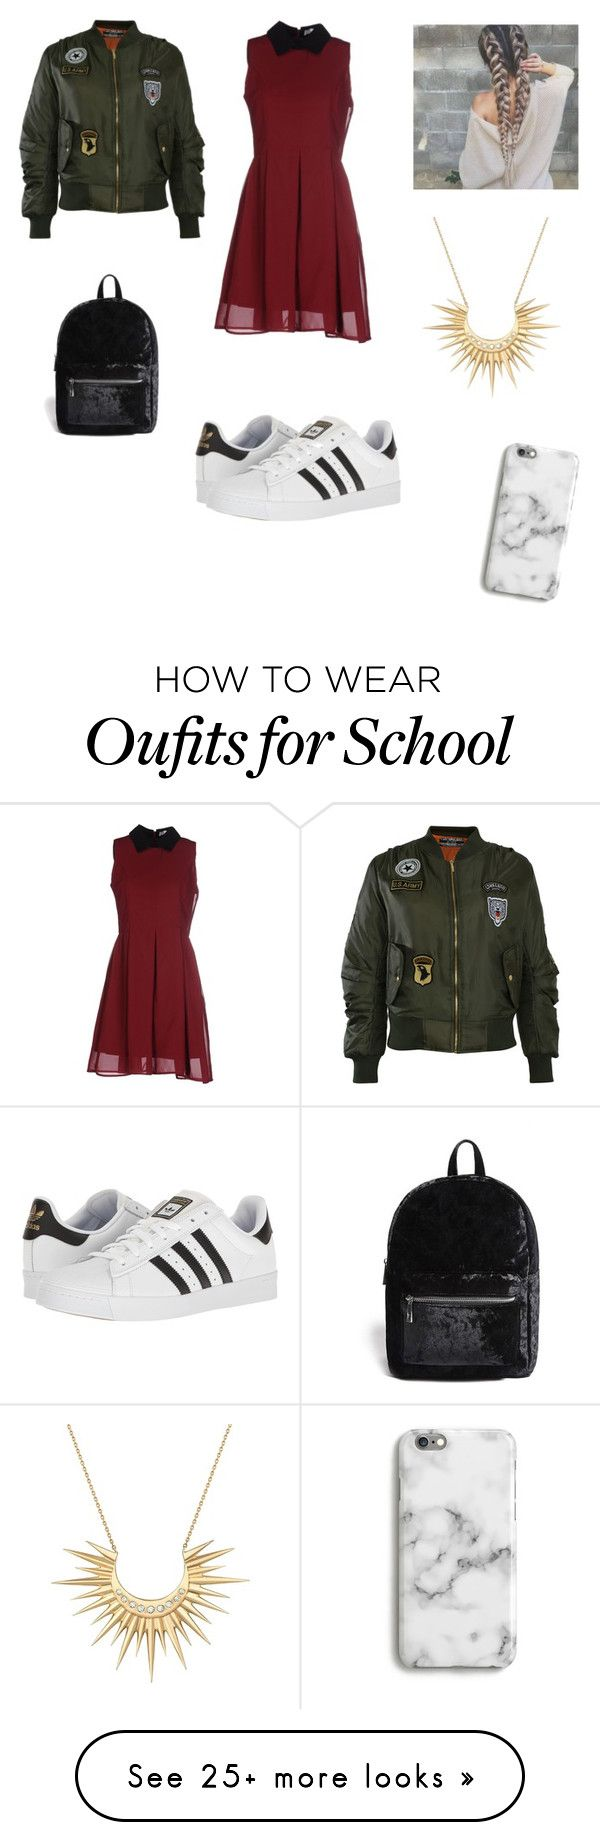 """""""School outfit"""" by sunsetburst on Polyvore featuring Anonyme Designers, Pilot, adidas, Forever 21, Harper & Blake and Celine Daoust"""